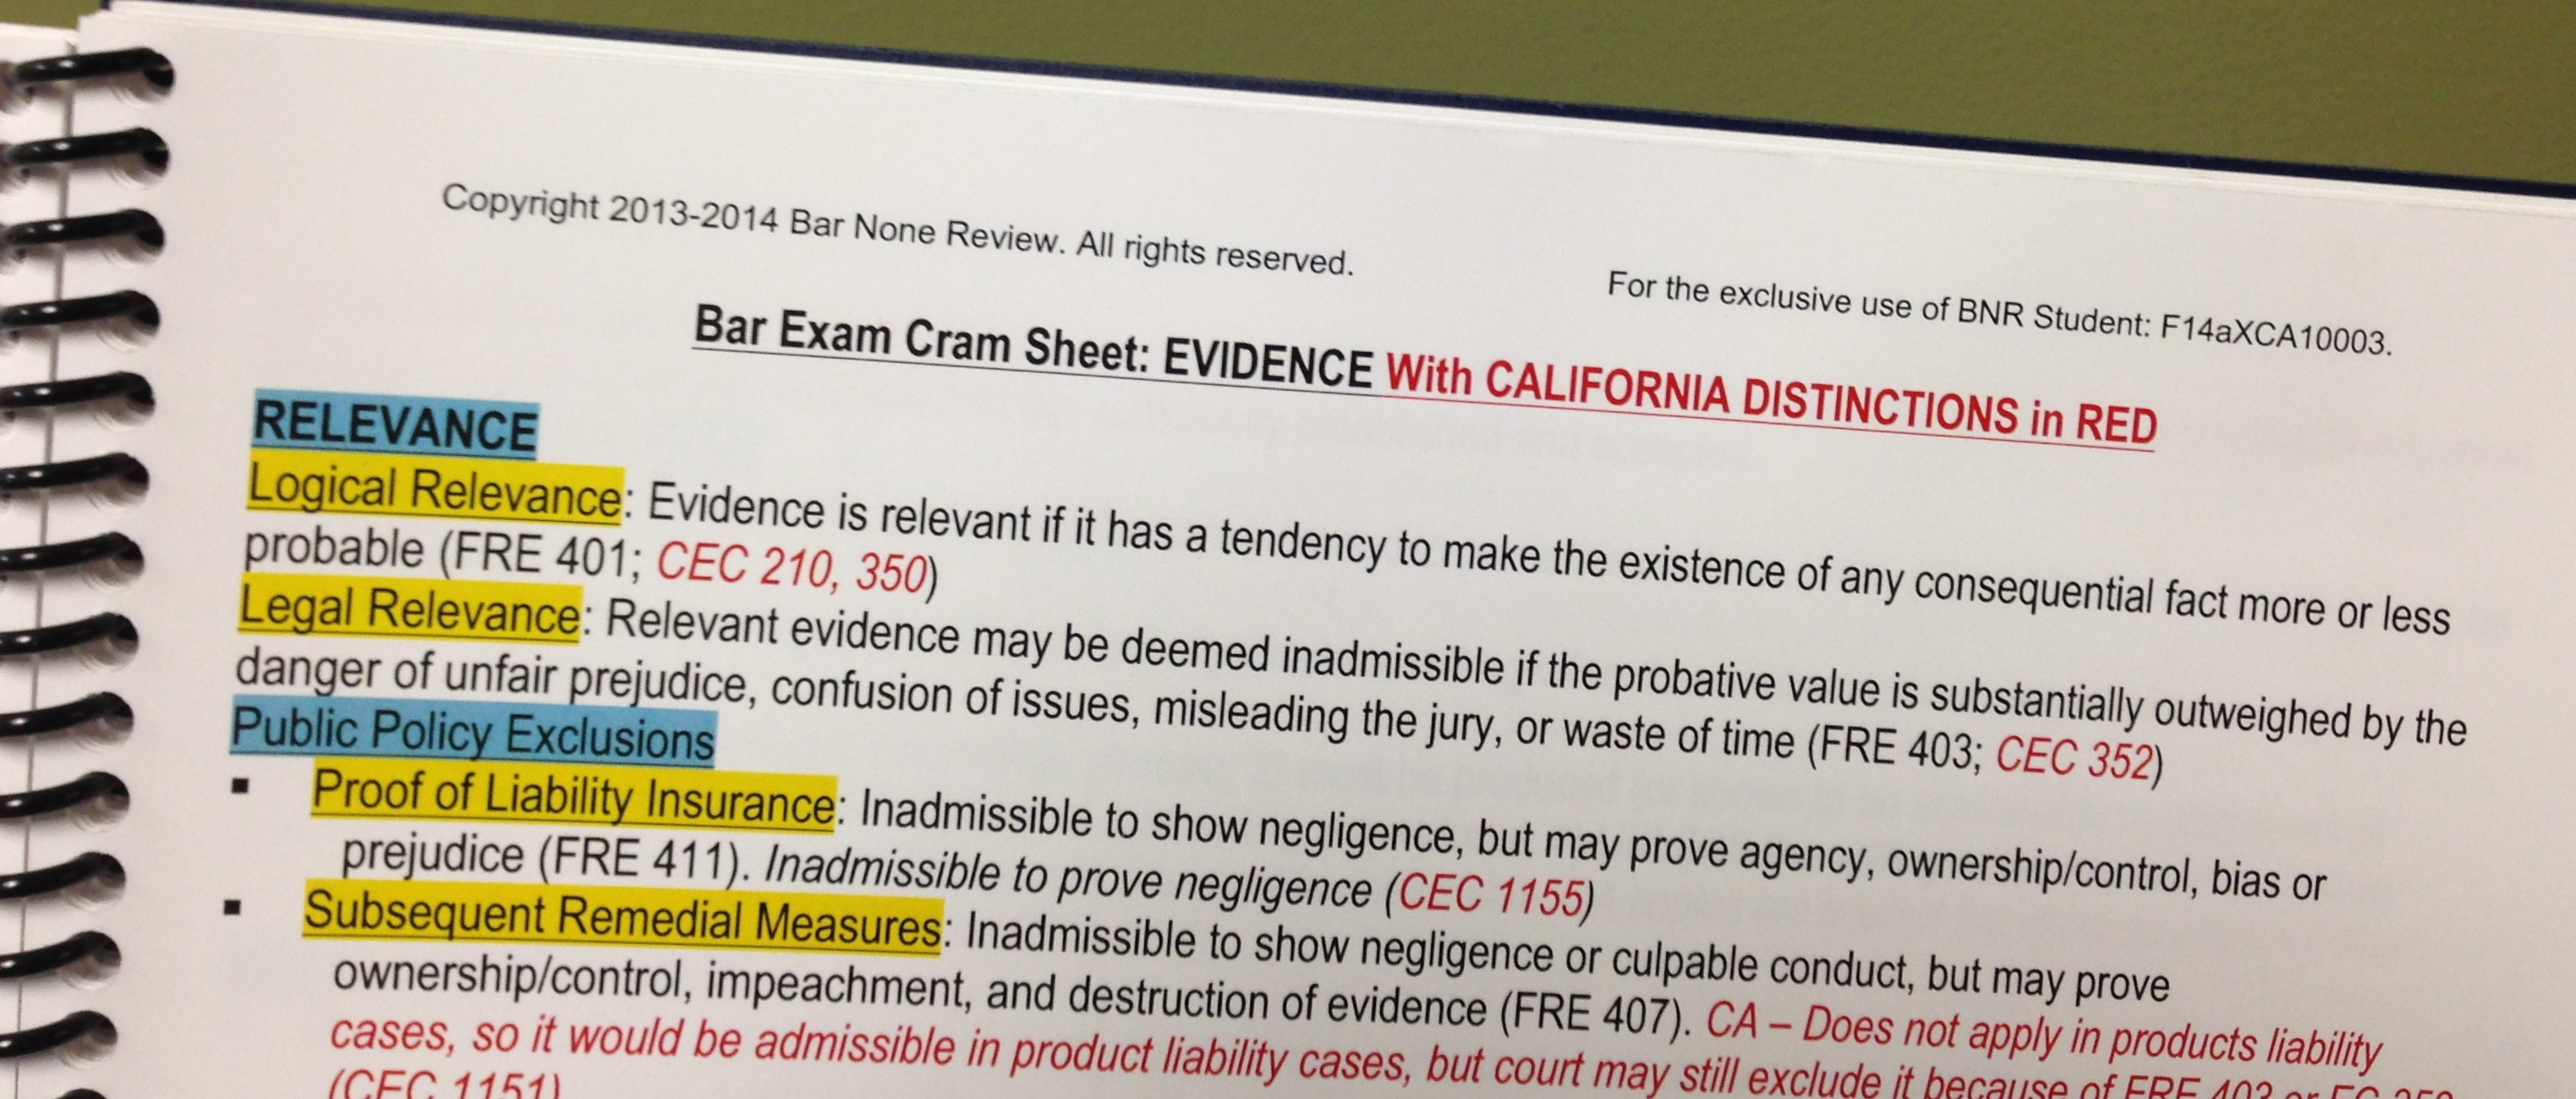 california bar exam feb 2008 essay predictions